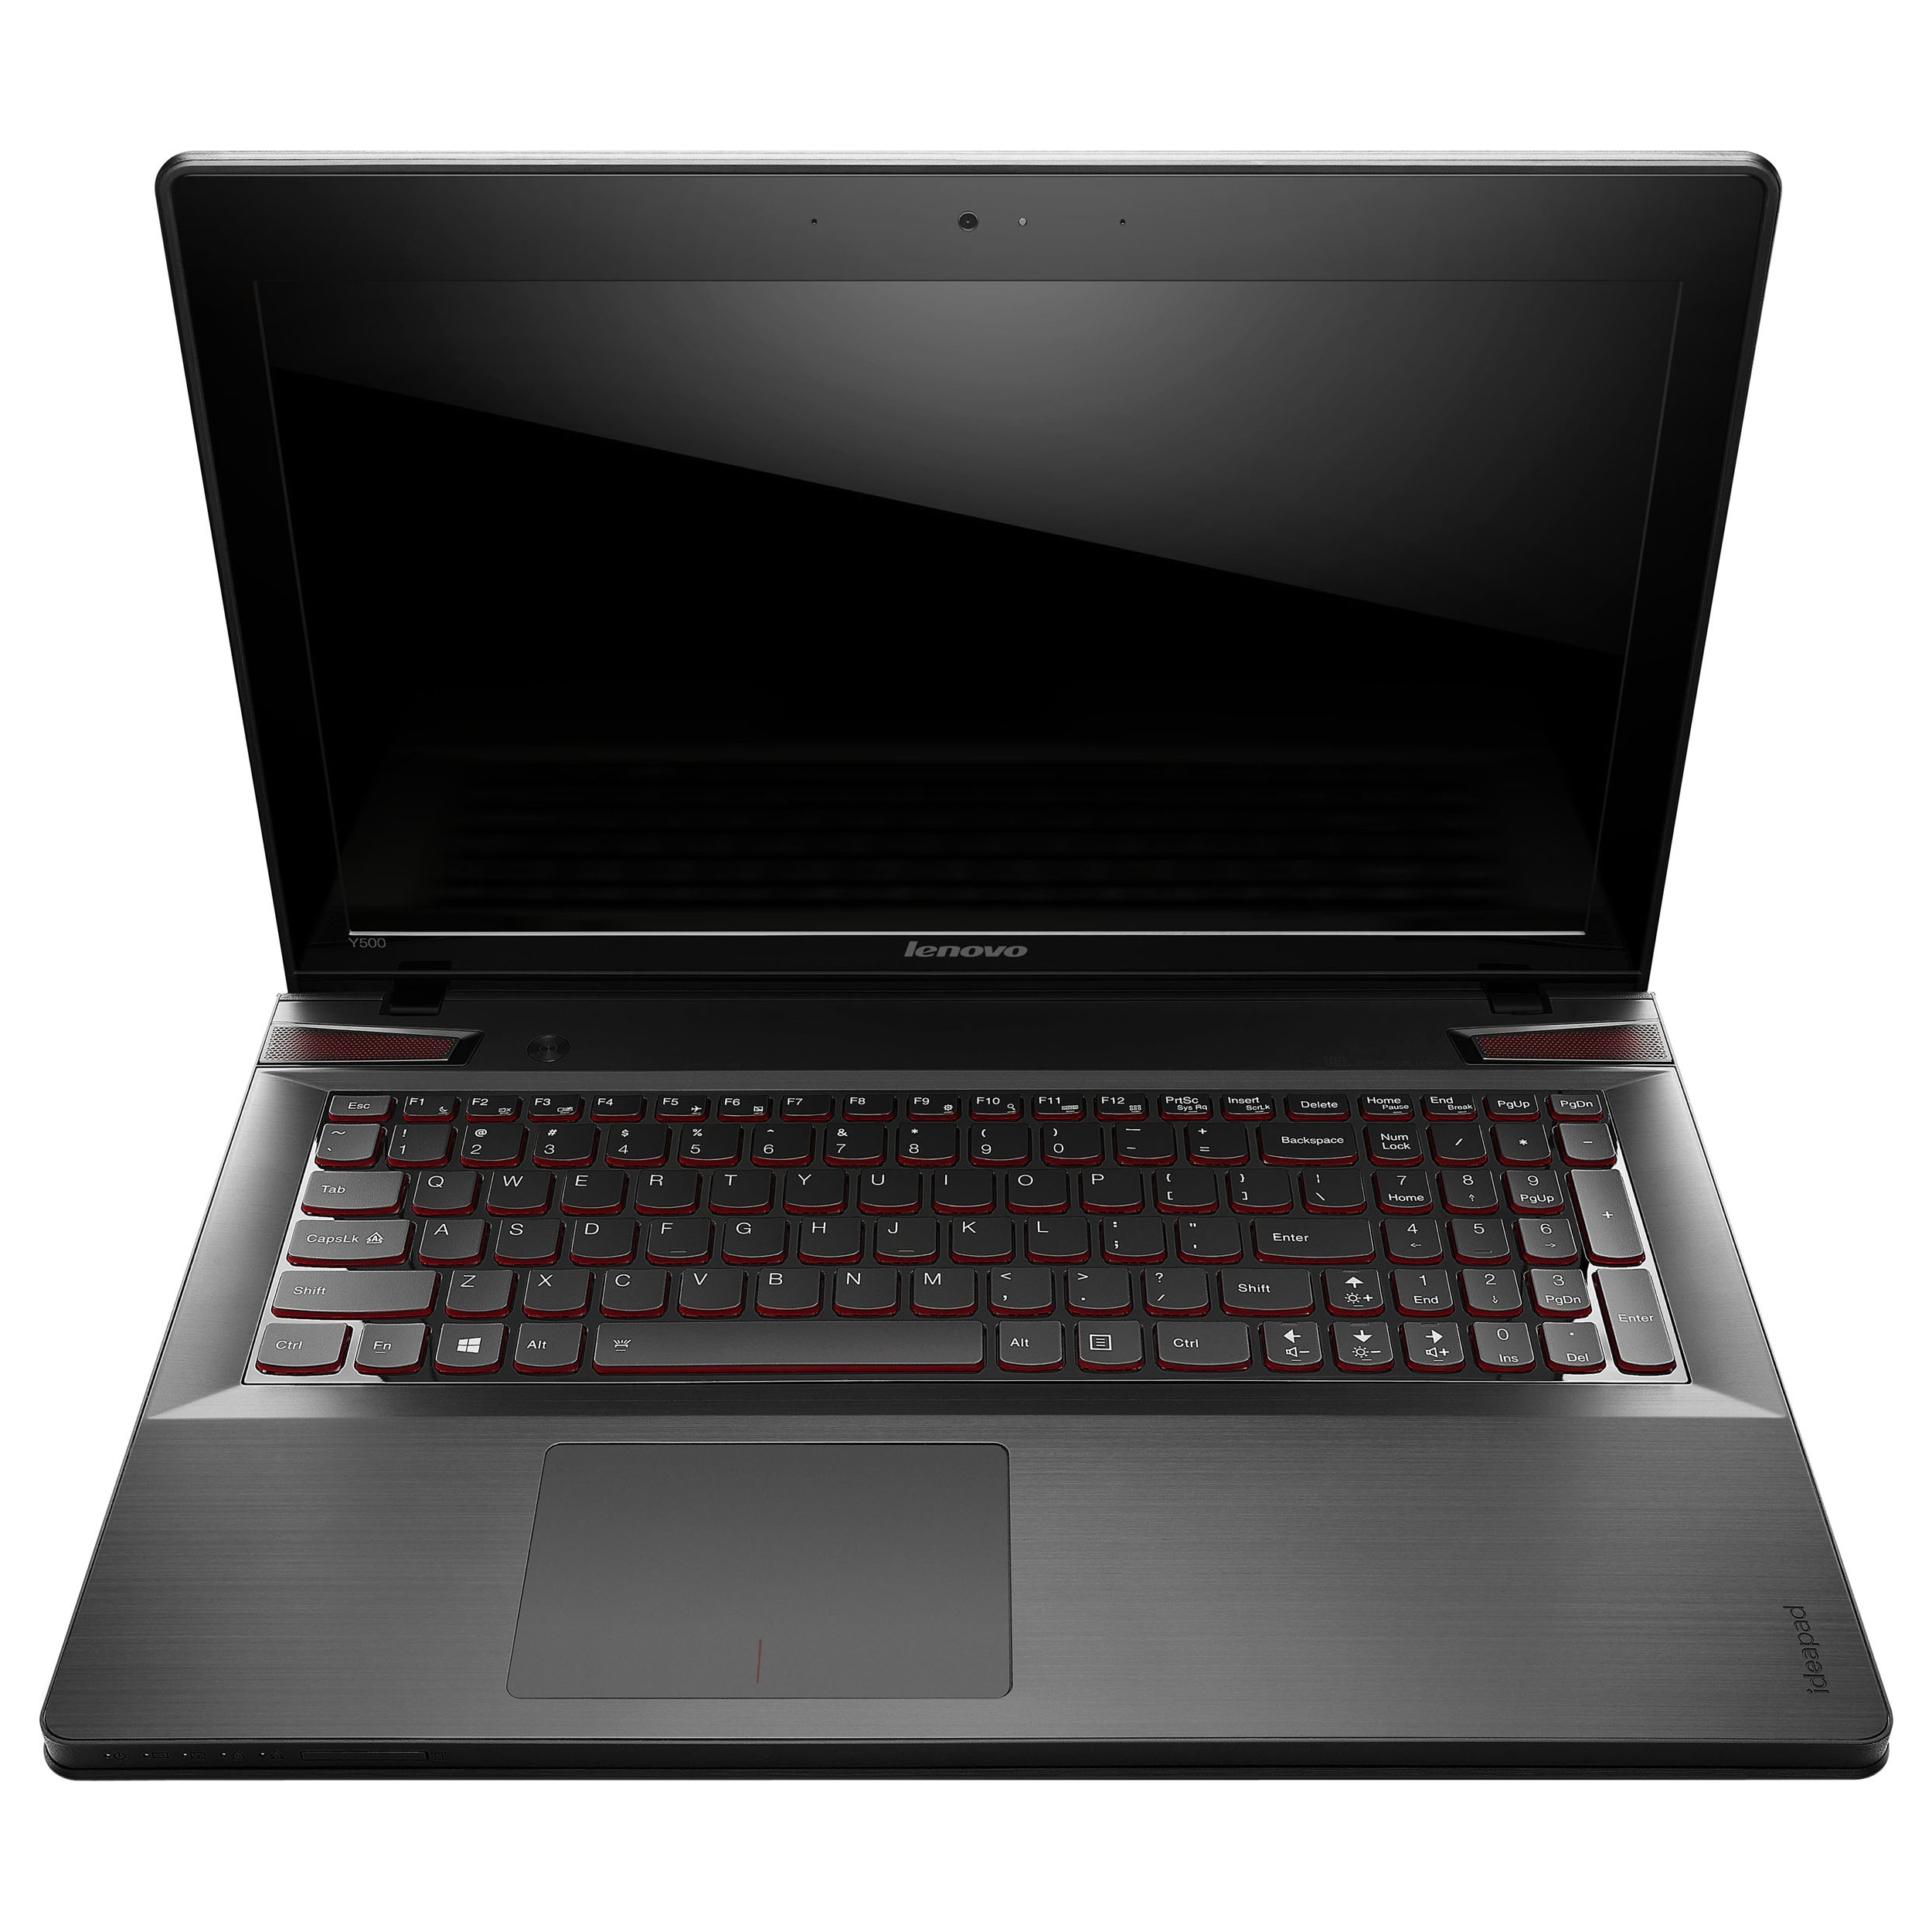 """Lenovo Metal Dusk Black 15.6"""" IdeaPad Y500 Laptop PC with Intel Core i5-3230M Processor and Windows 8 Operating System"""